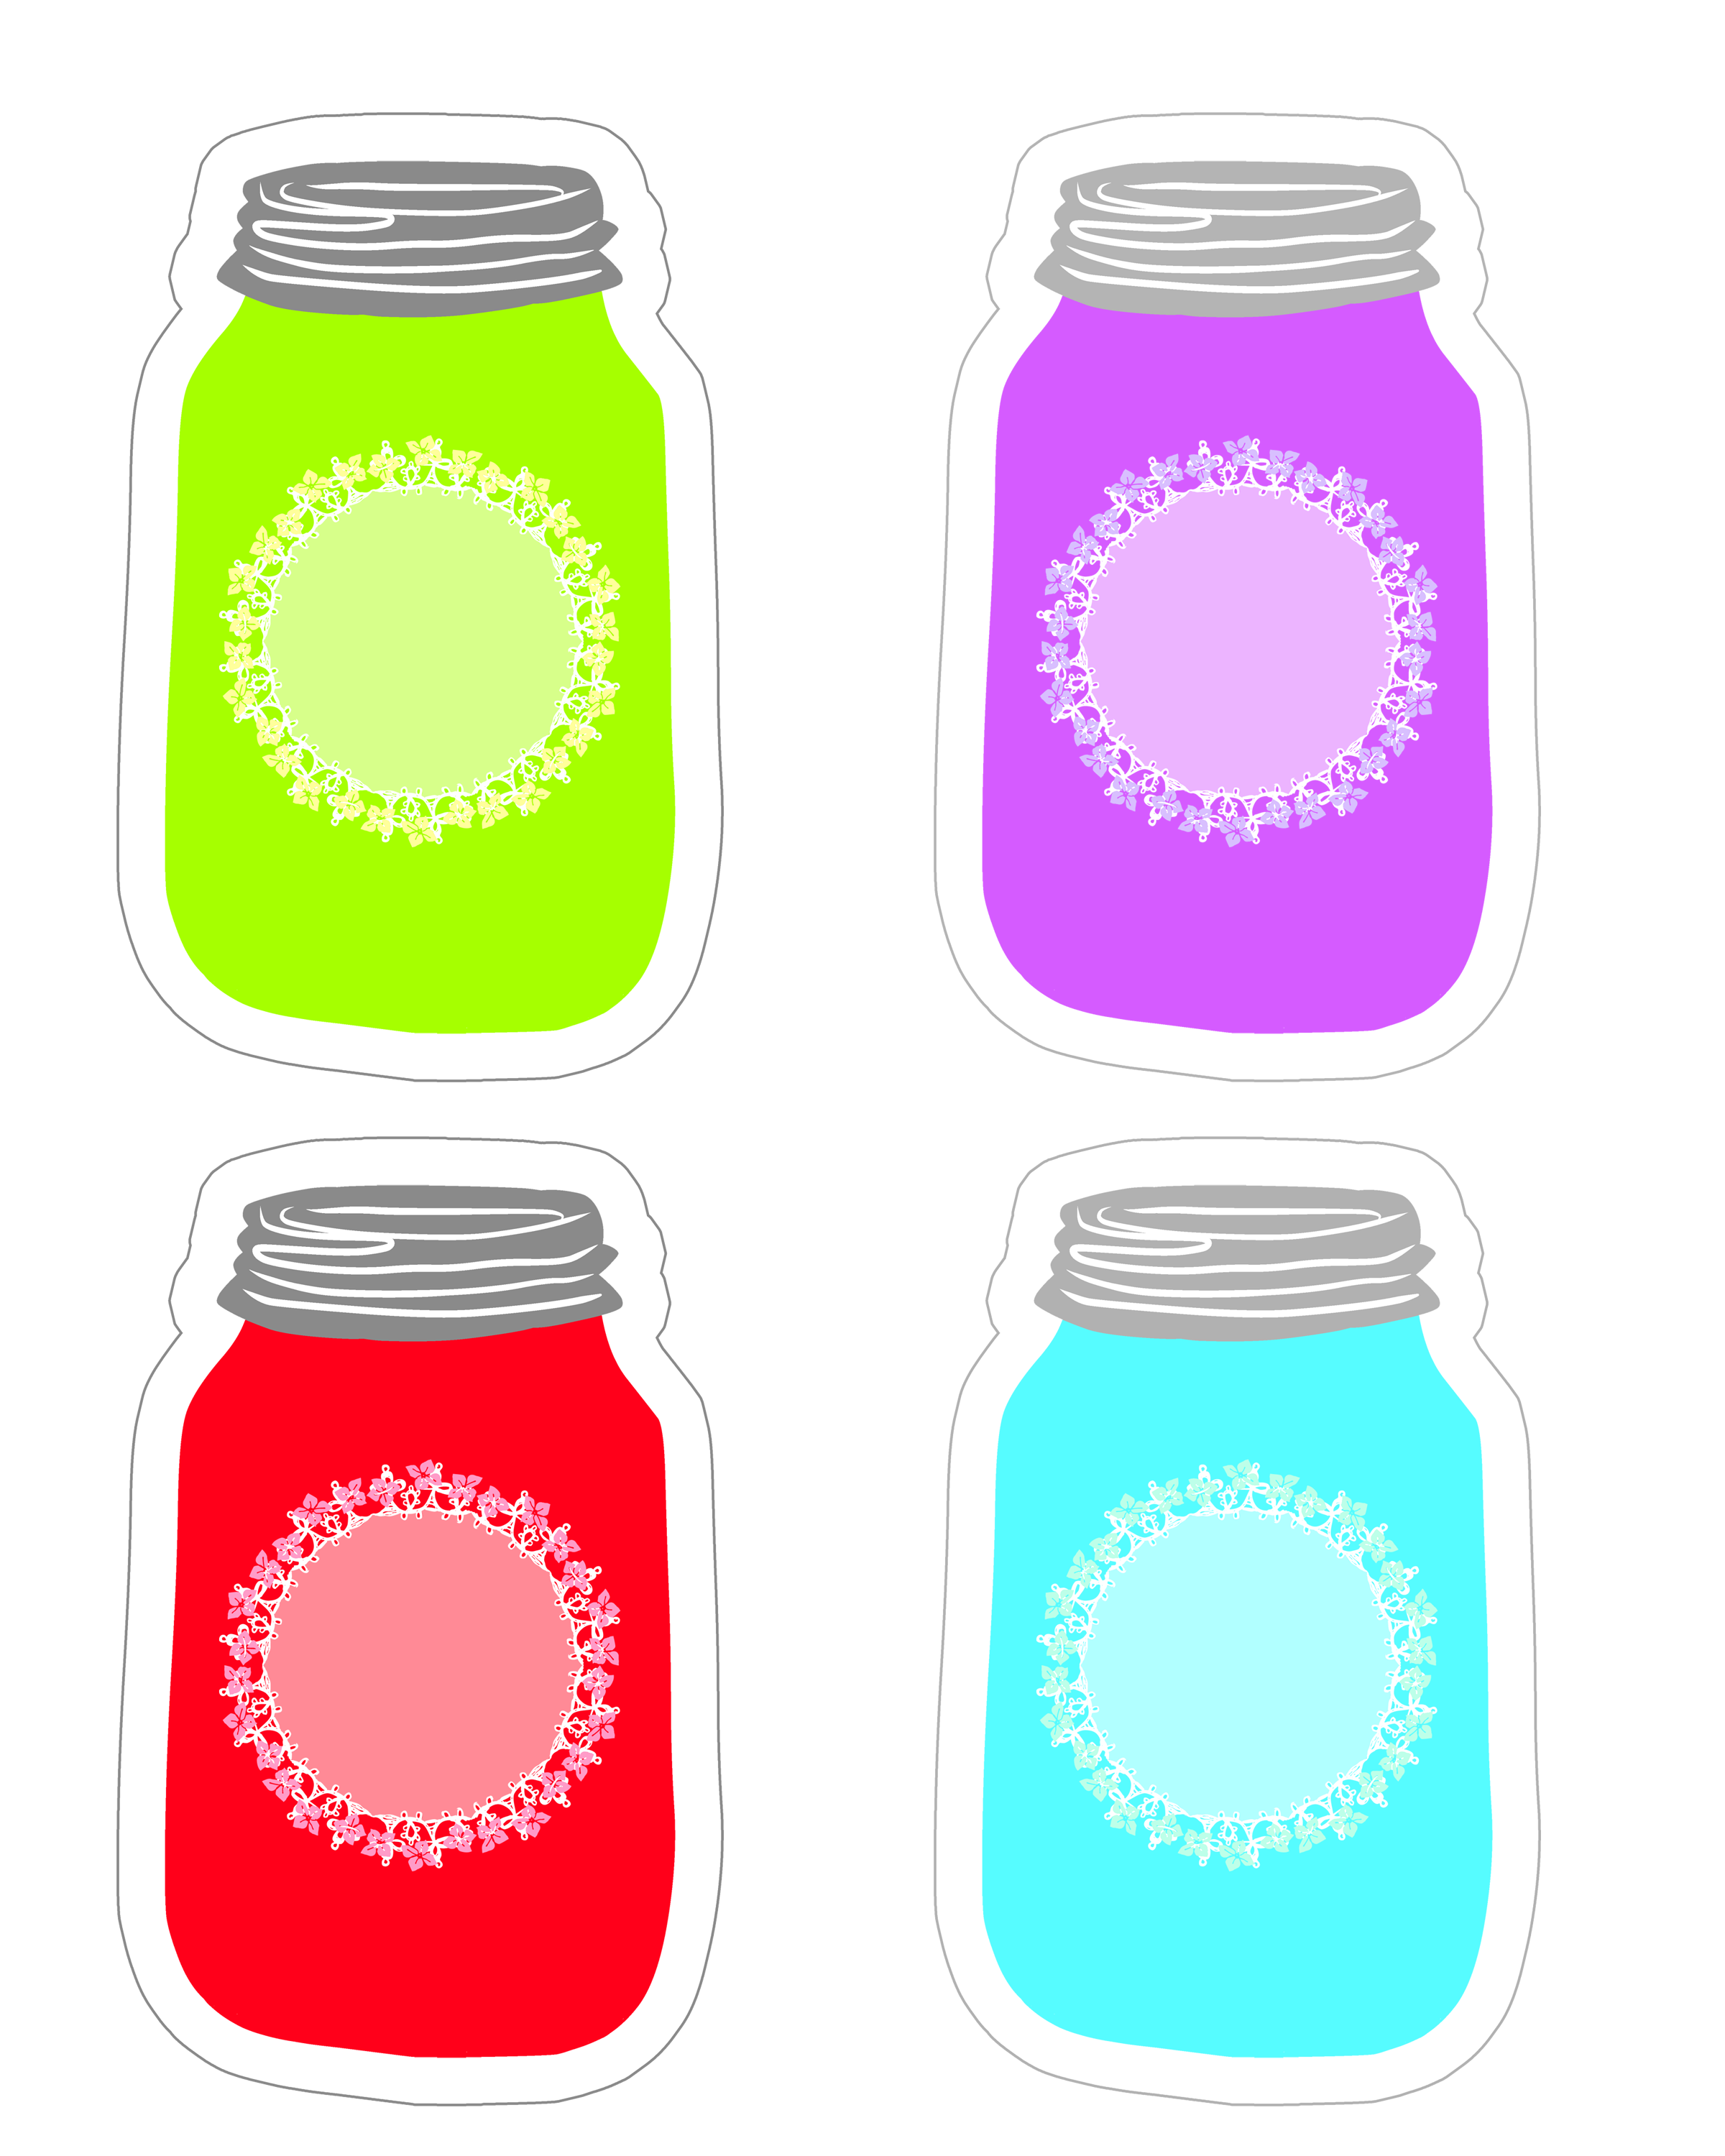 Marbles clipart jar clipart.  collection of cute